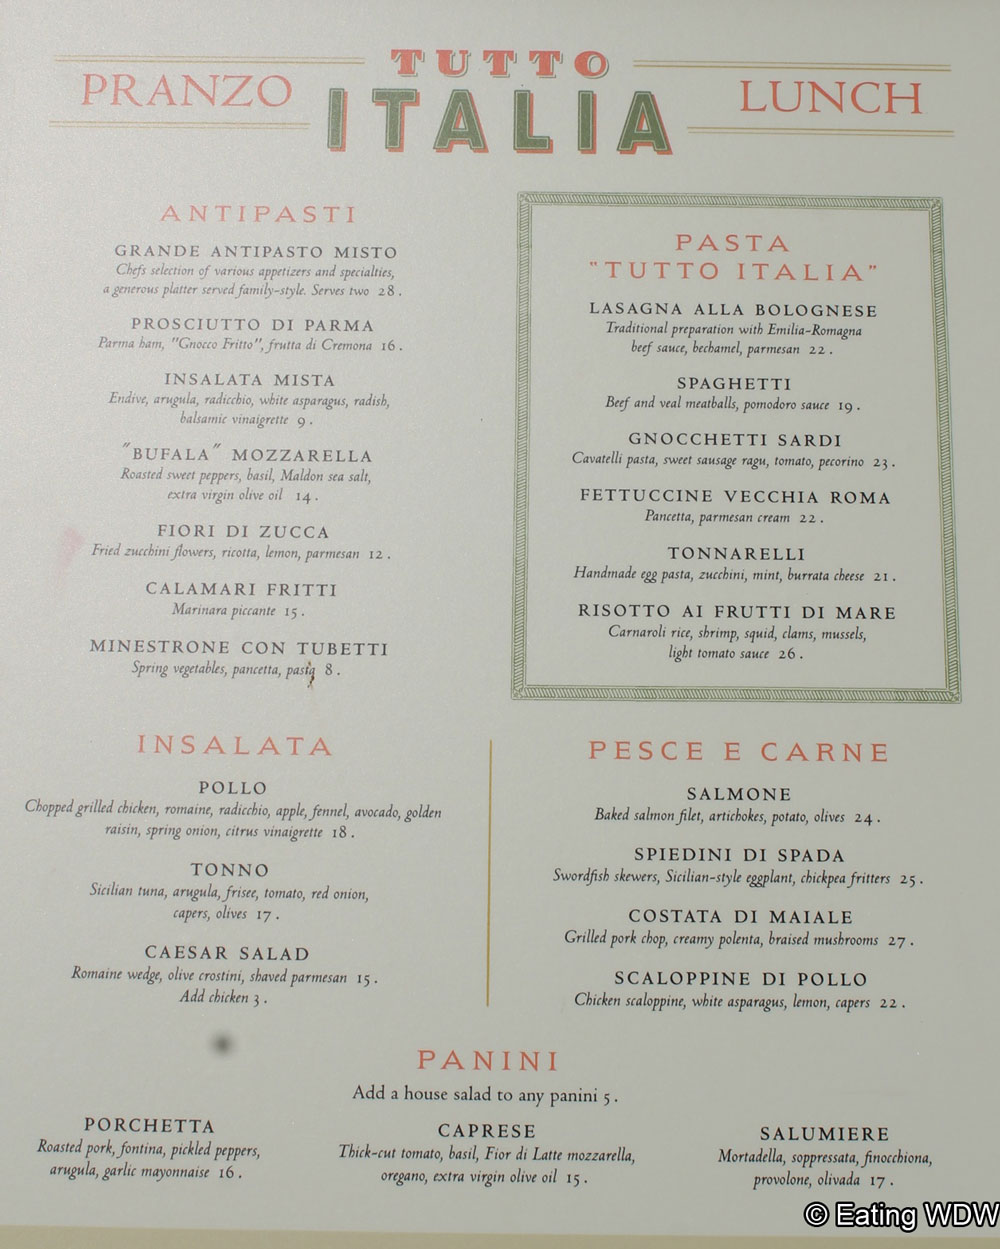 Epcot menus eating wdw for Tutete italia